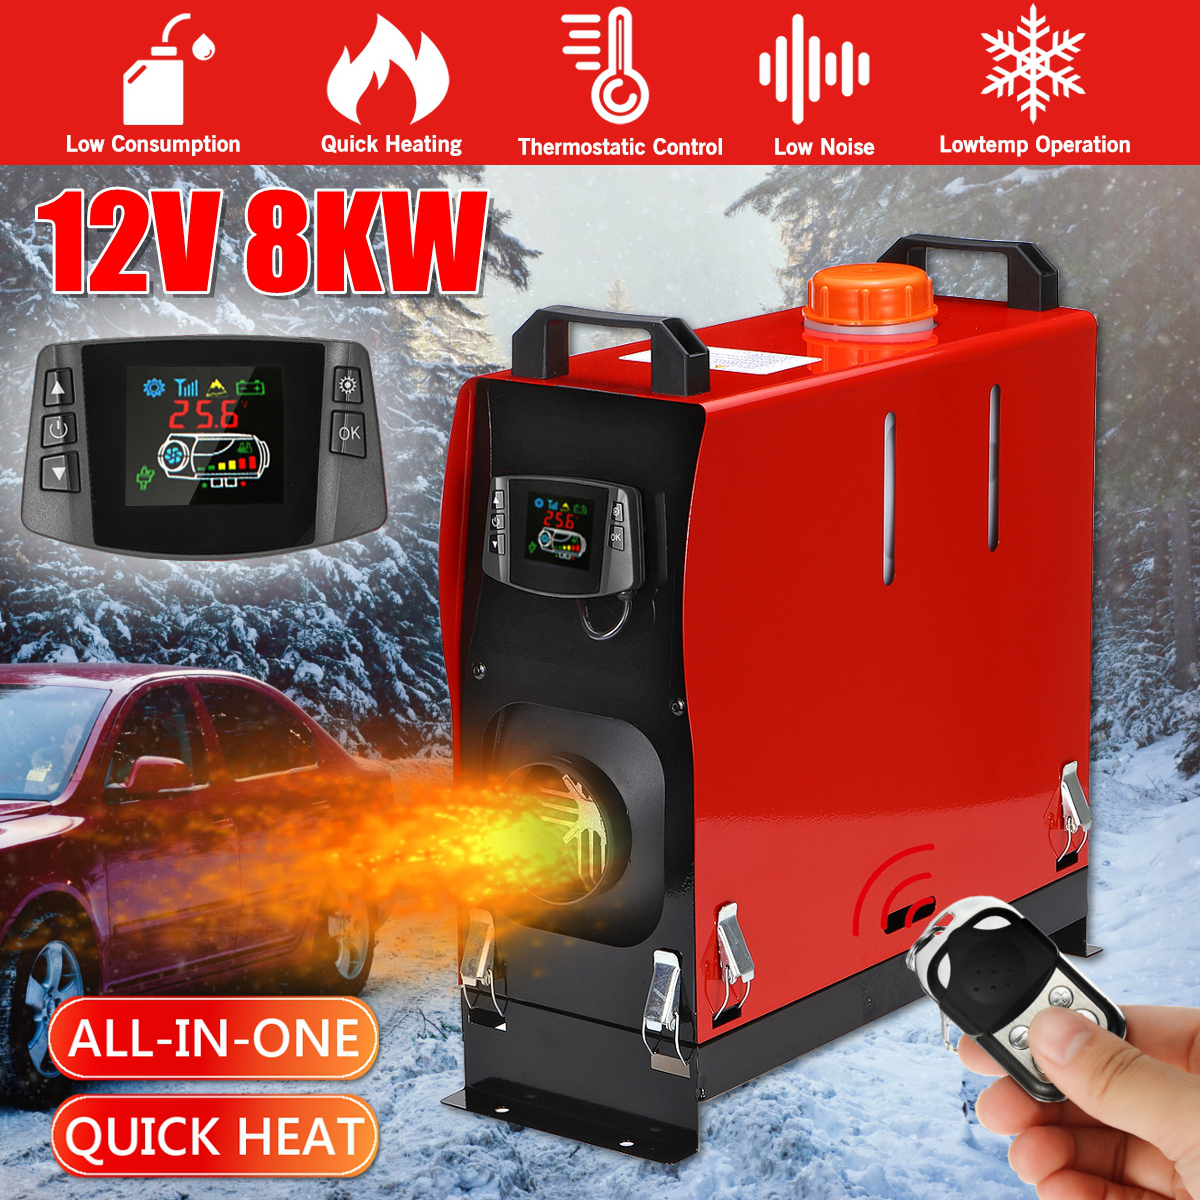 Hcaloryรถเครื่องทำความร้อนAll In One 8kW Airดีเซลเครื่องทำความร้อนสีแดง8KW 12V One Holeรถเครื่องทำความร้อนสำหรับ...